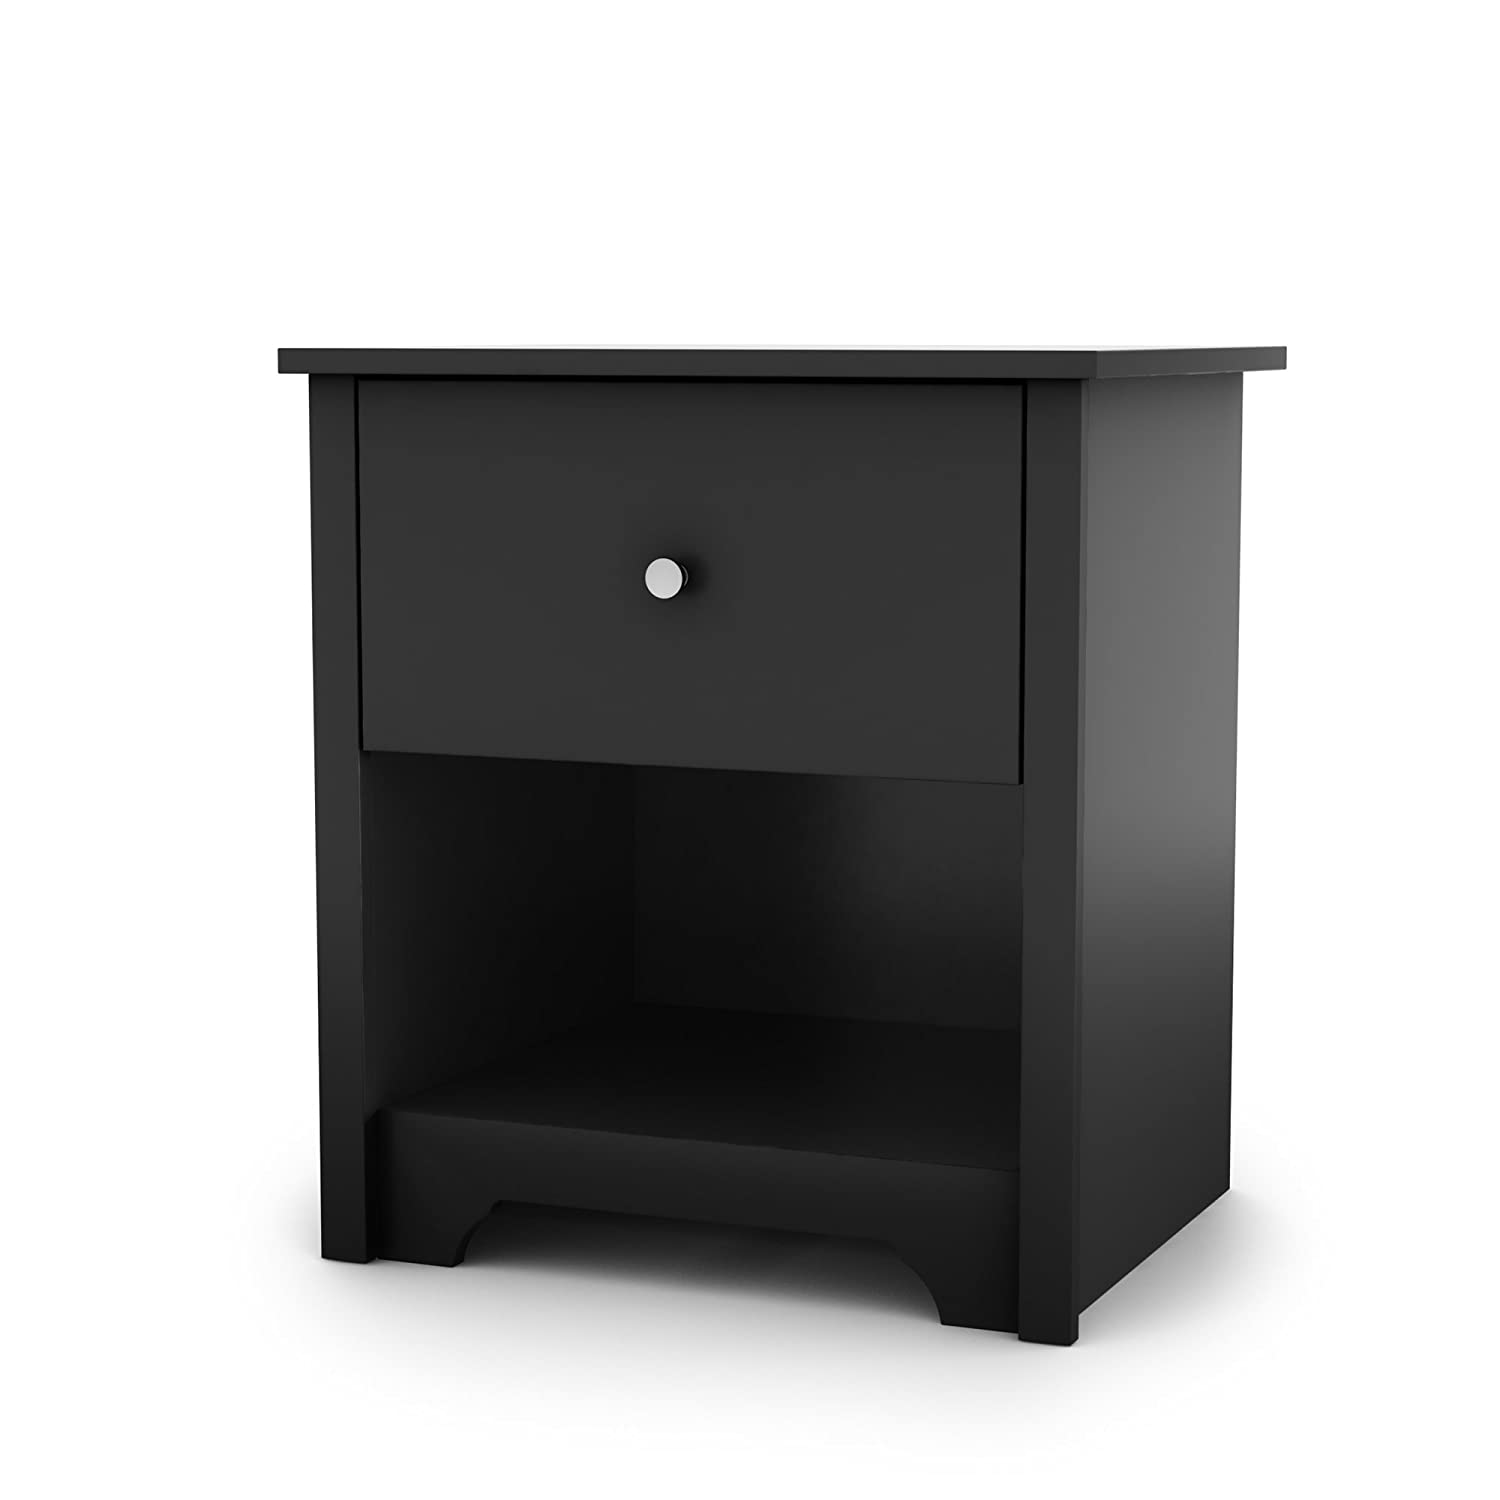 South Shore Vito 1-Drawer Nightstand, Black with Matte Nickel Handles